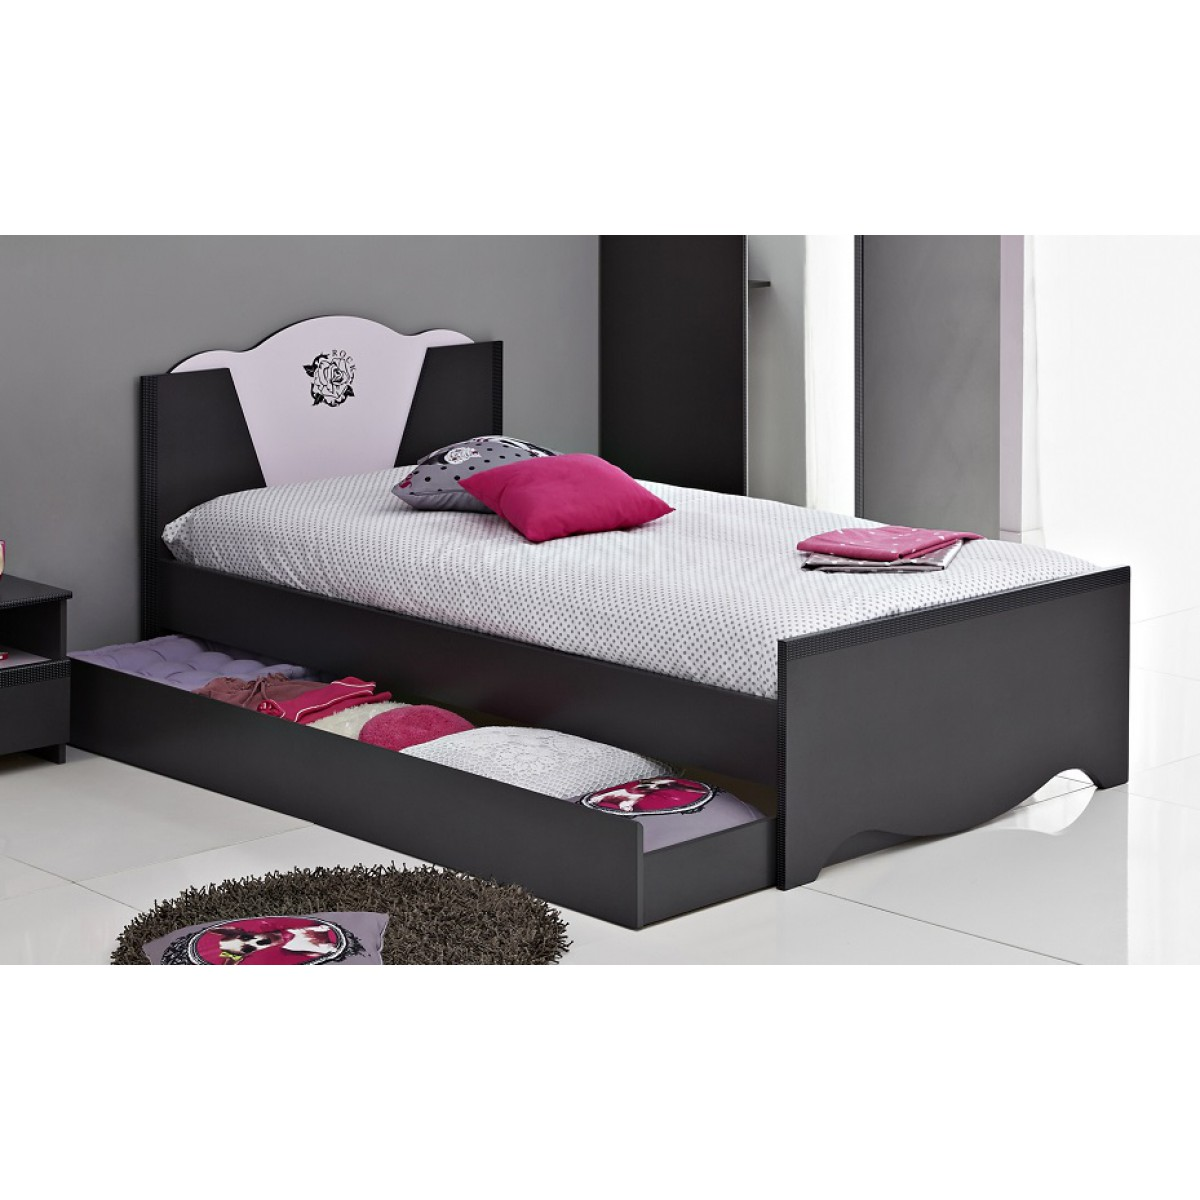 terre lit en bois 90x200 avec tiroirs gris ombre rose dr. Black Bedroom Furniture Sets. Home Design Ideas